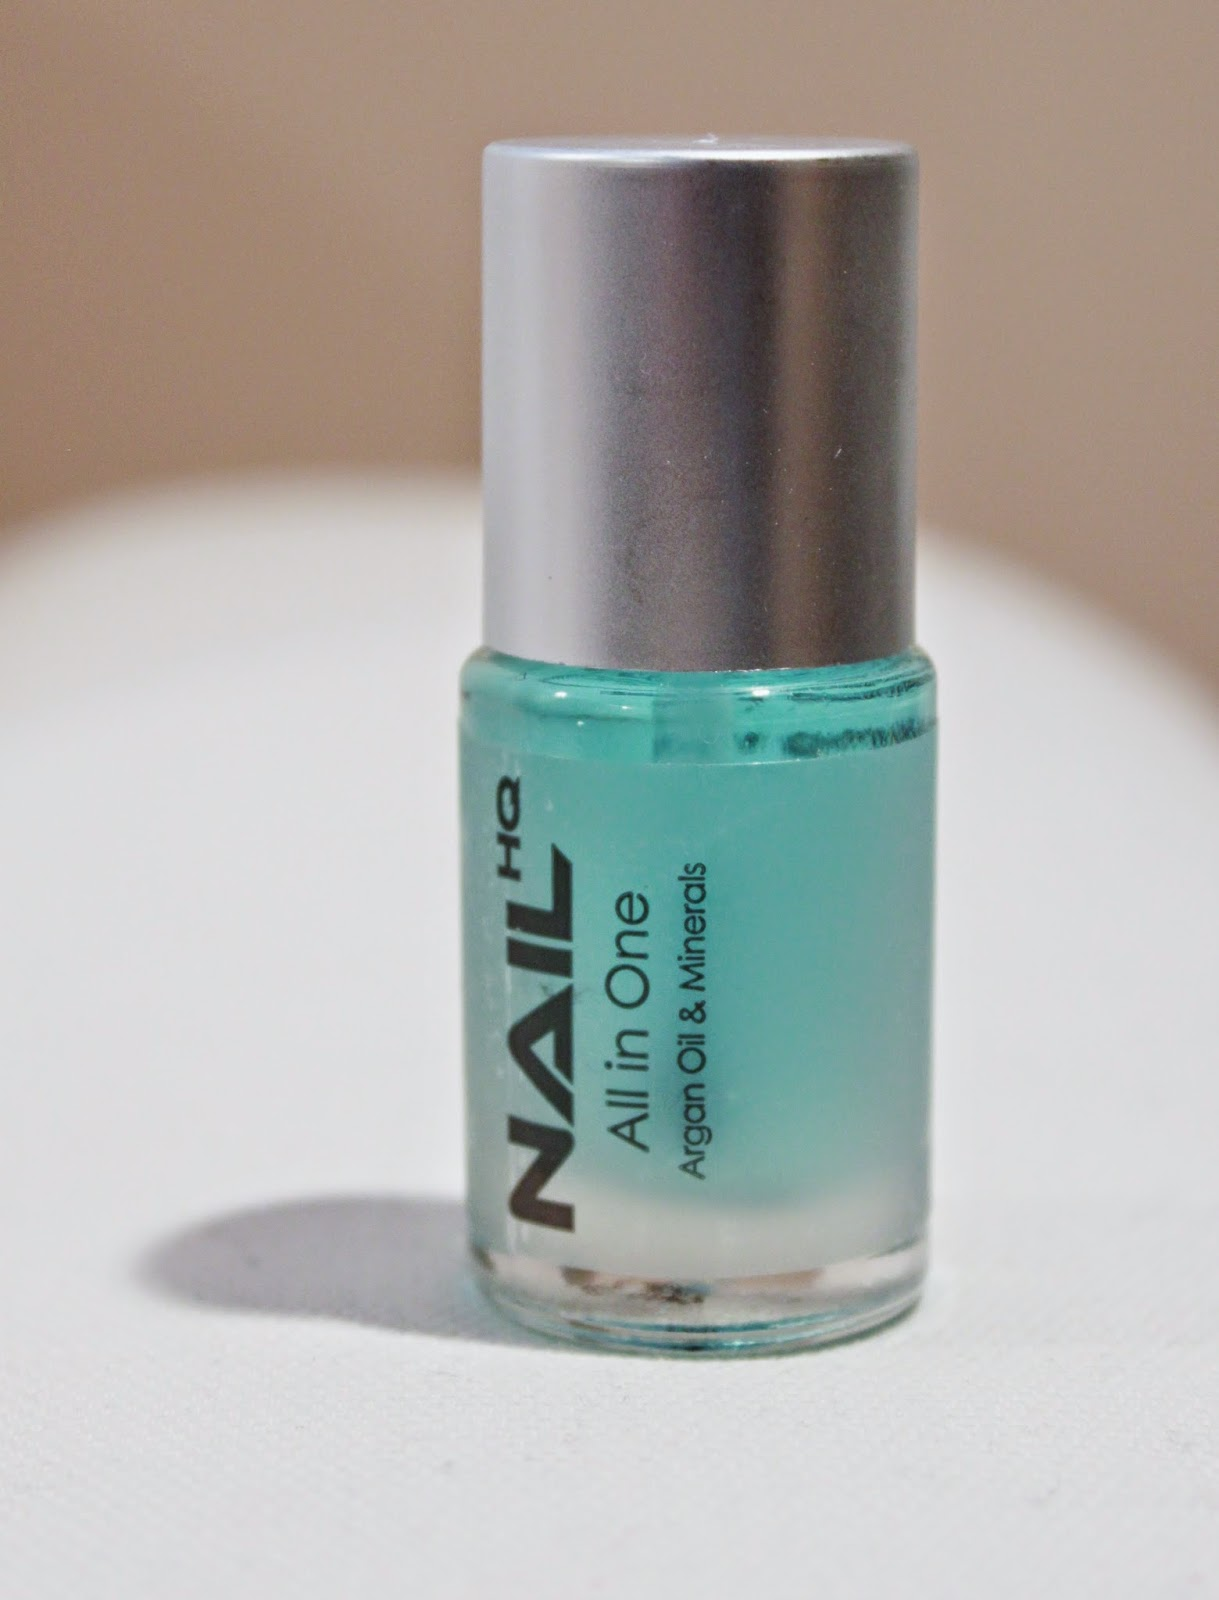 Just J: Nail HQ All in One Nail Treatment Review